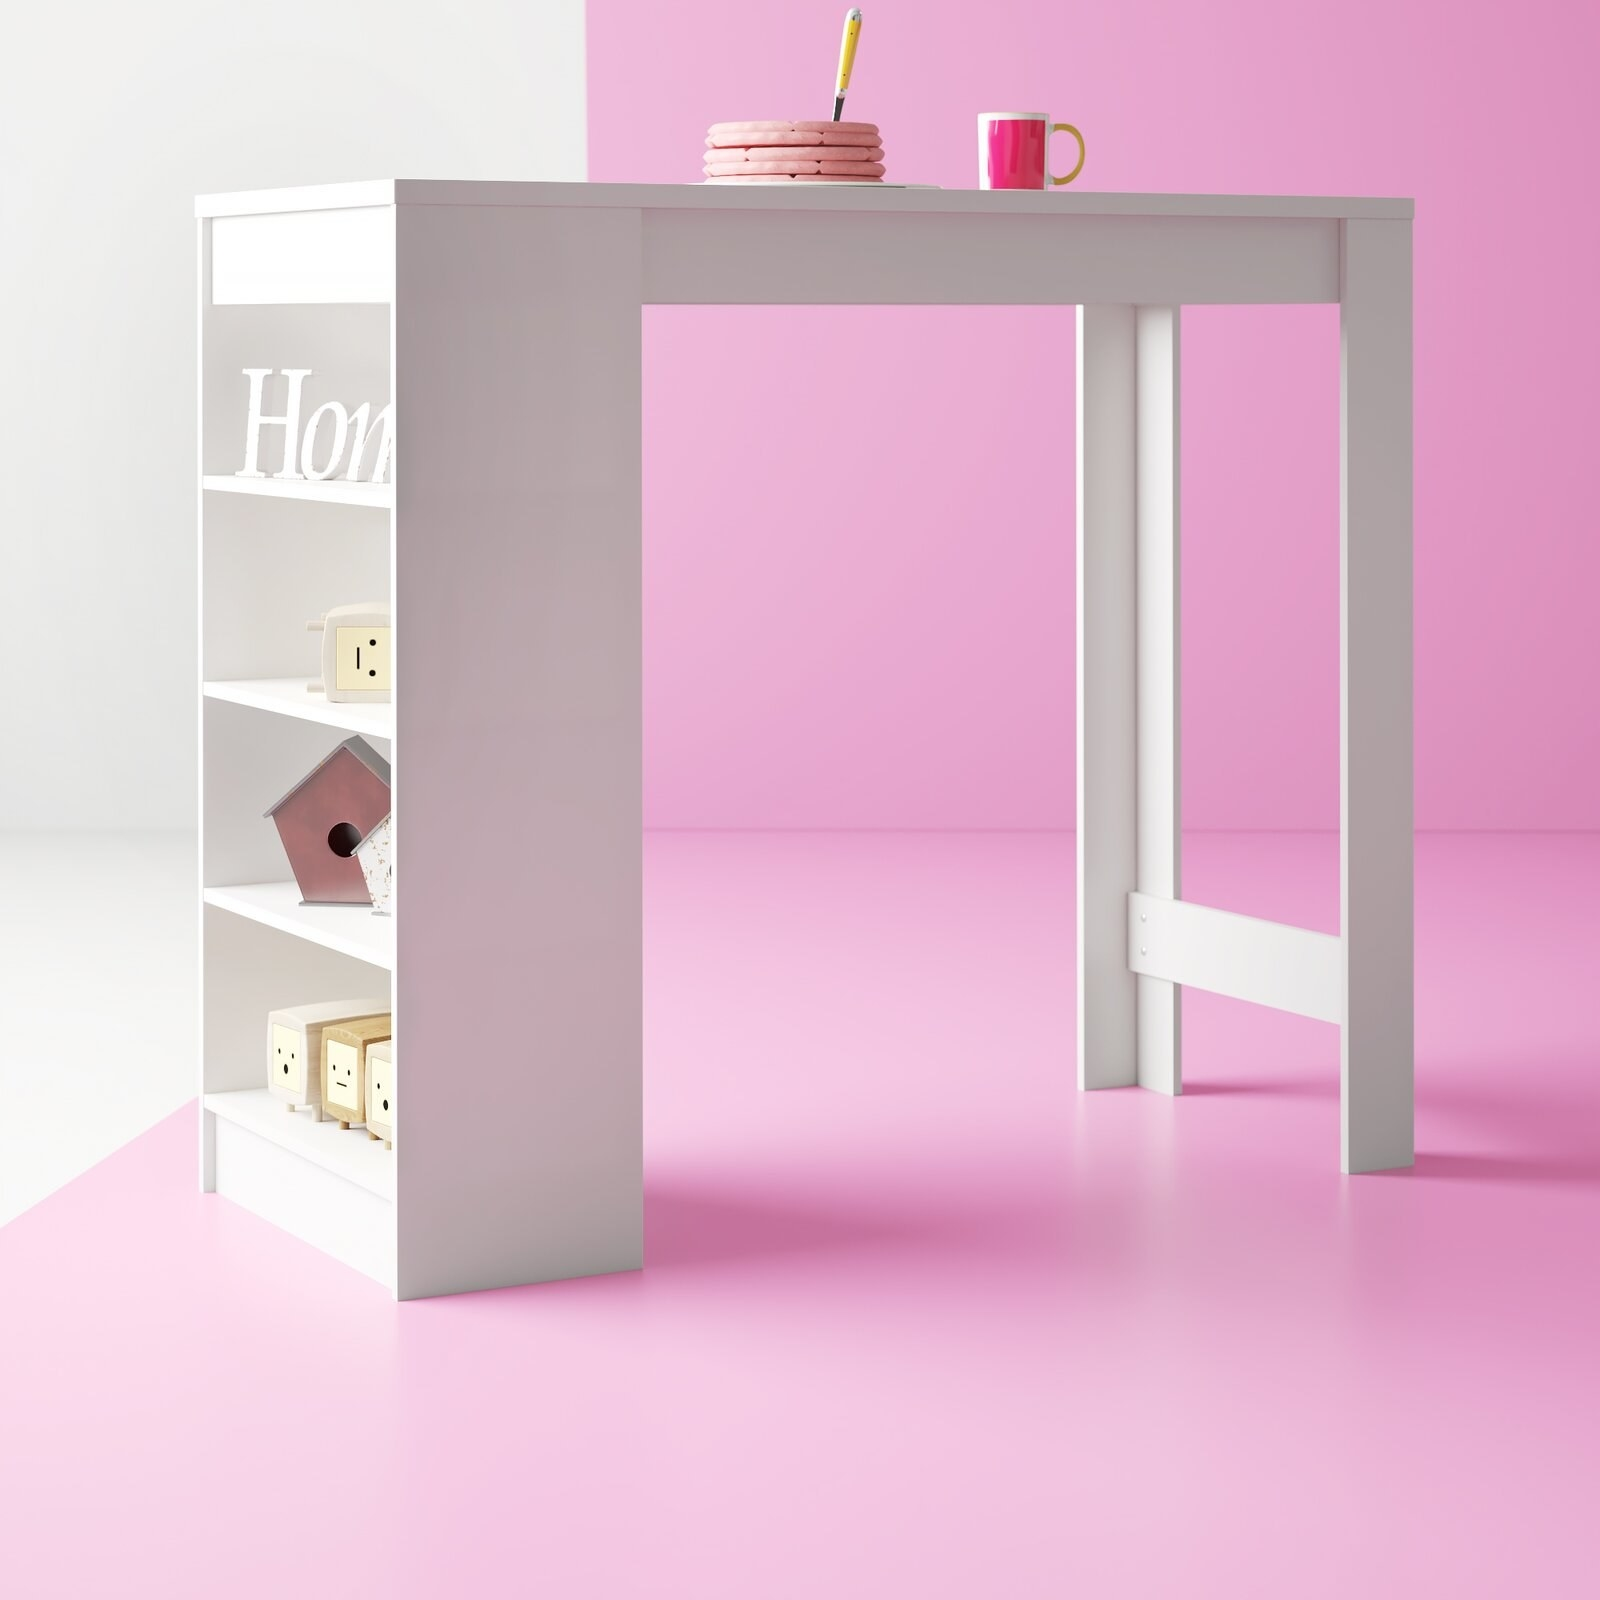 The table, which has four small open shelves built into one leg